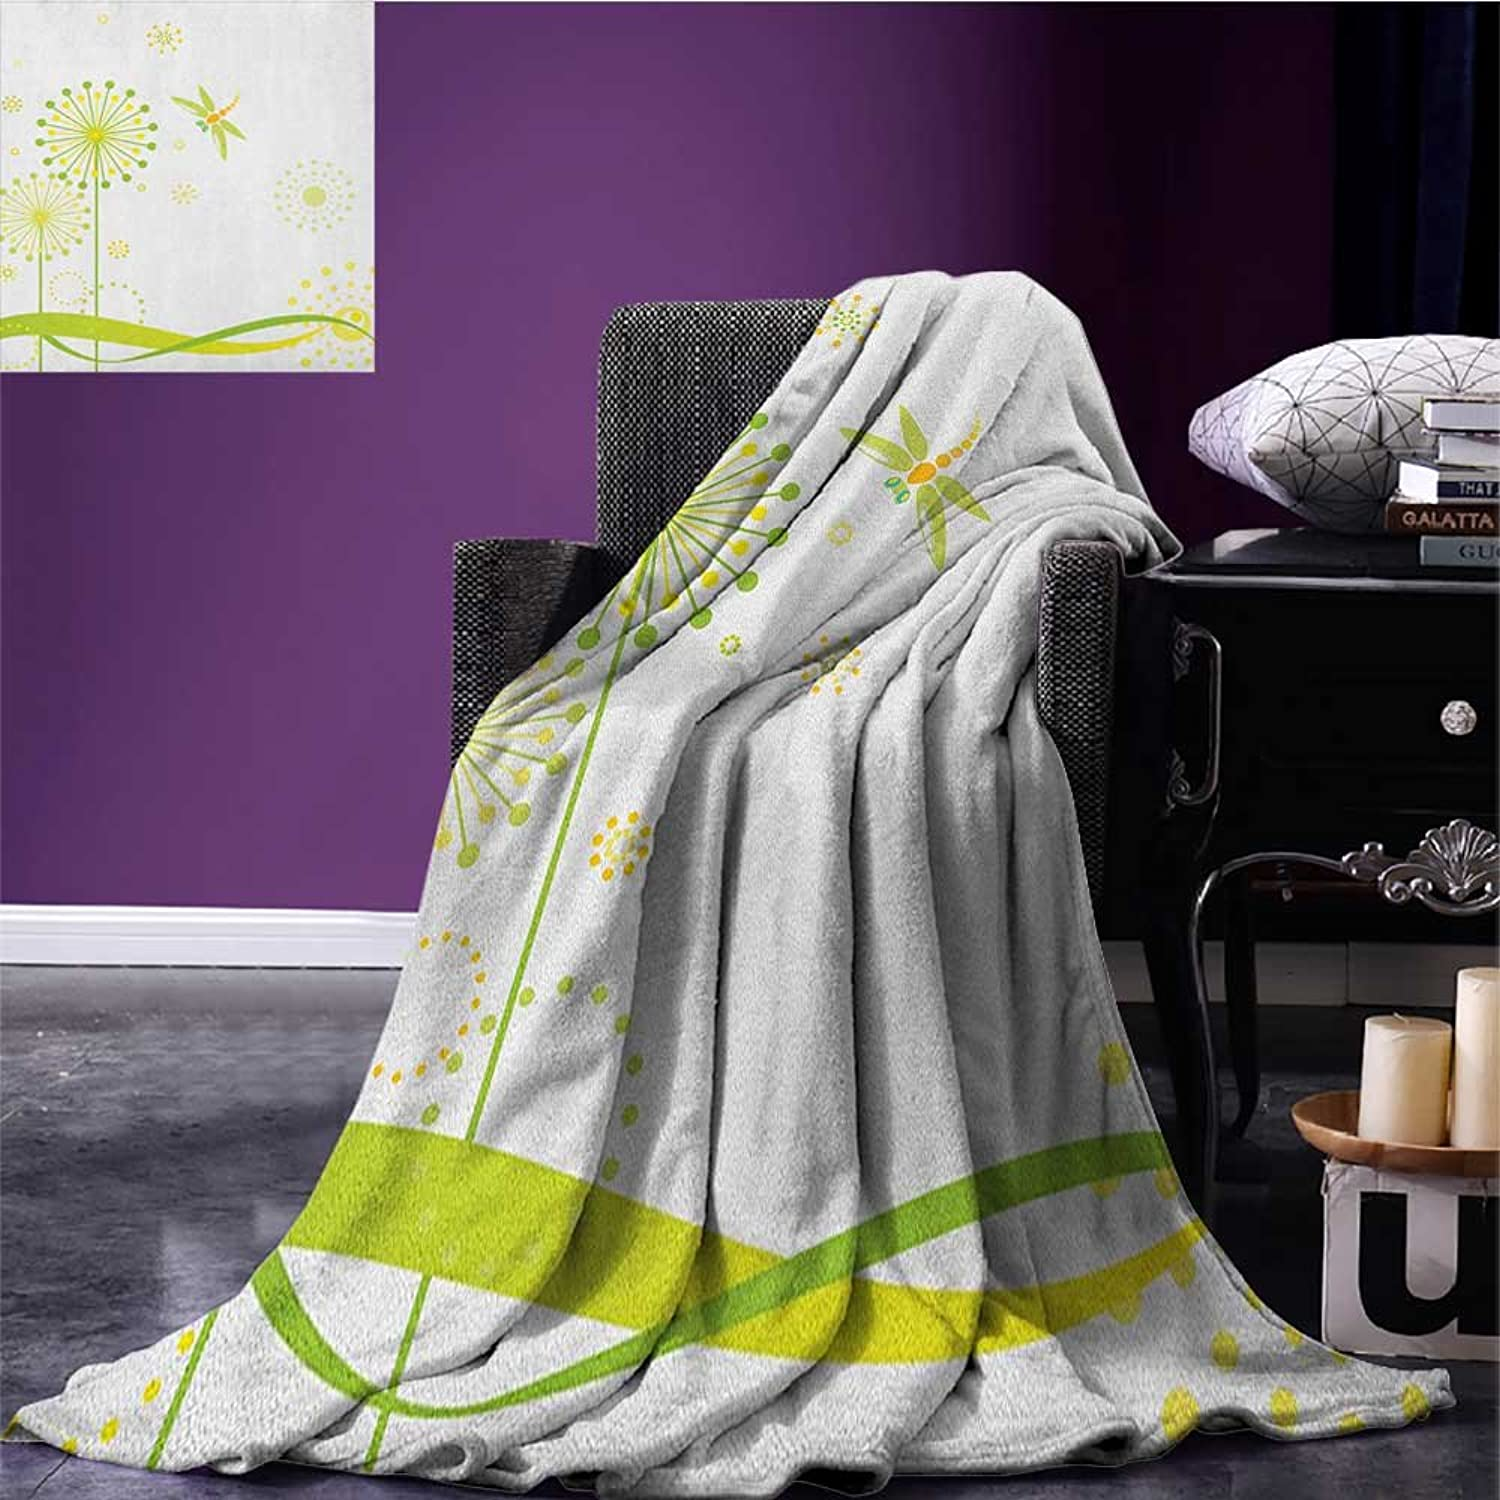 Dragonfly Picnic Blanket Spring Theme with Dandelion Flowers Happiness Hope Artful Summer Design Soft Throw Blanket Lime and Apple Green Size 59 x35.5